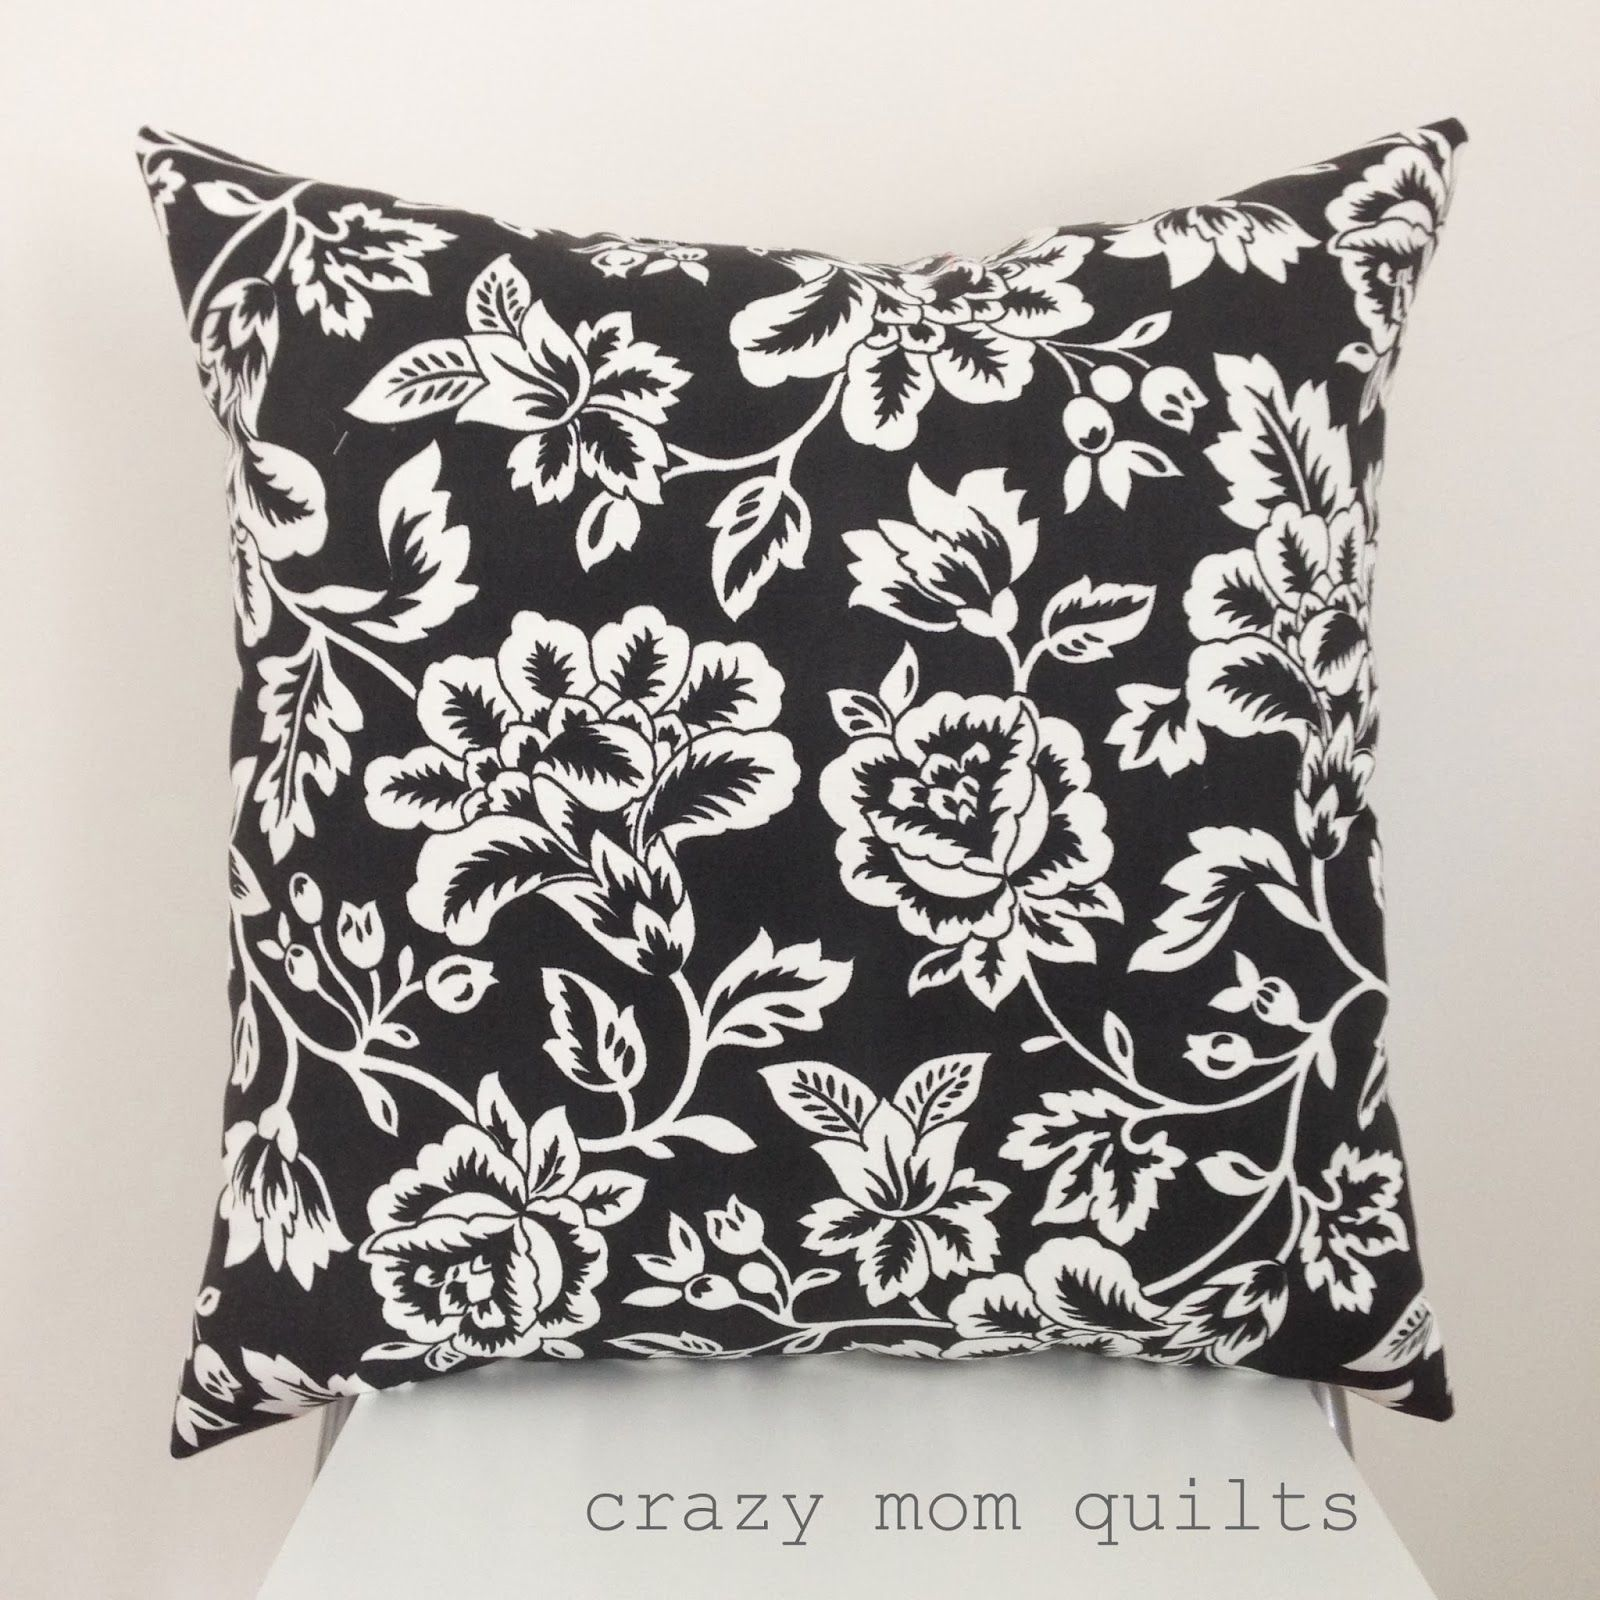 One way to make a pillow form crazy mom tutorials and cross stitching